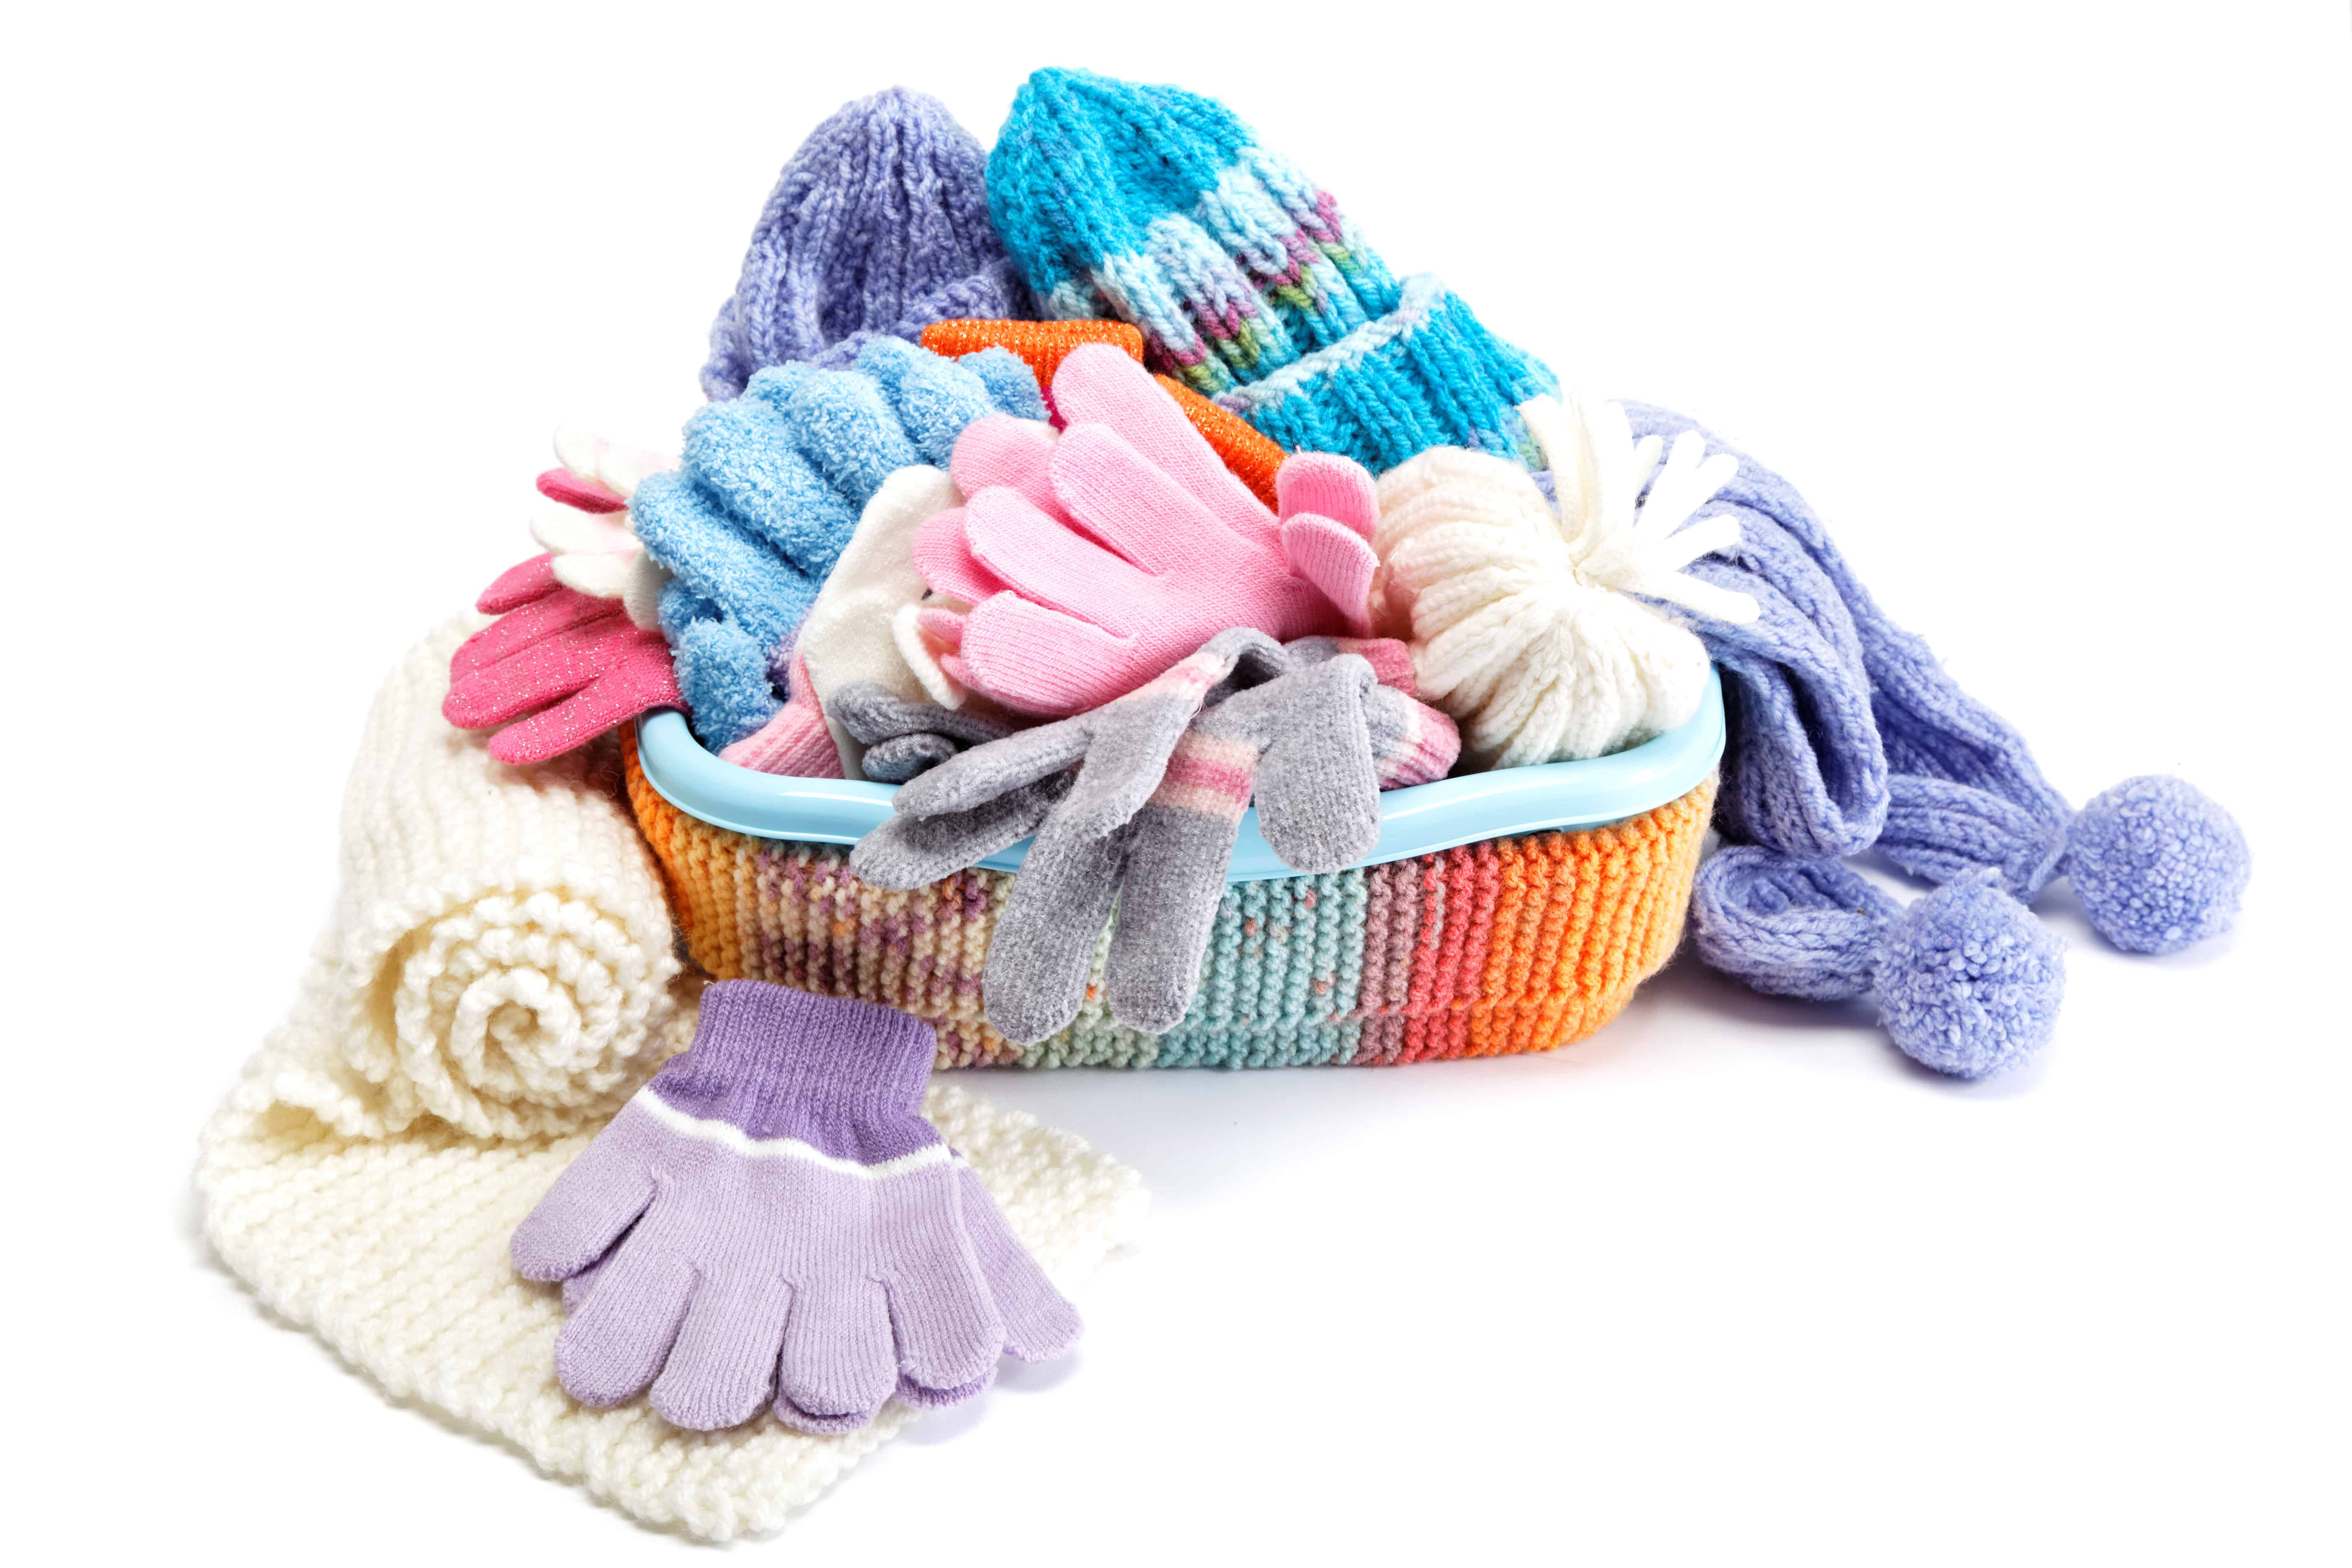 Declutter and organized winter accessories and outerwear with these ideas.